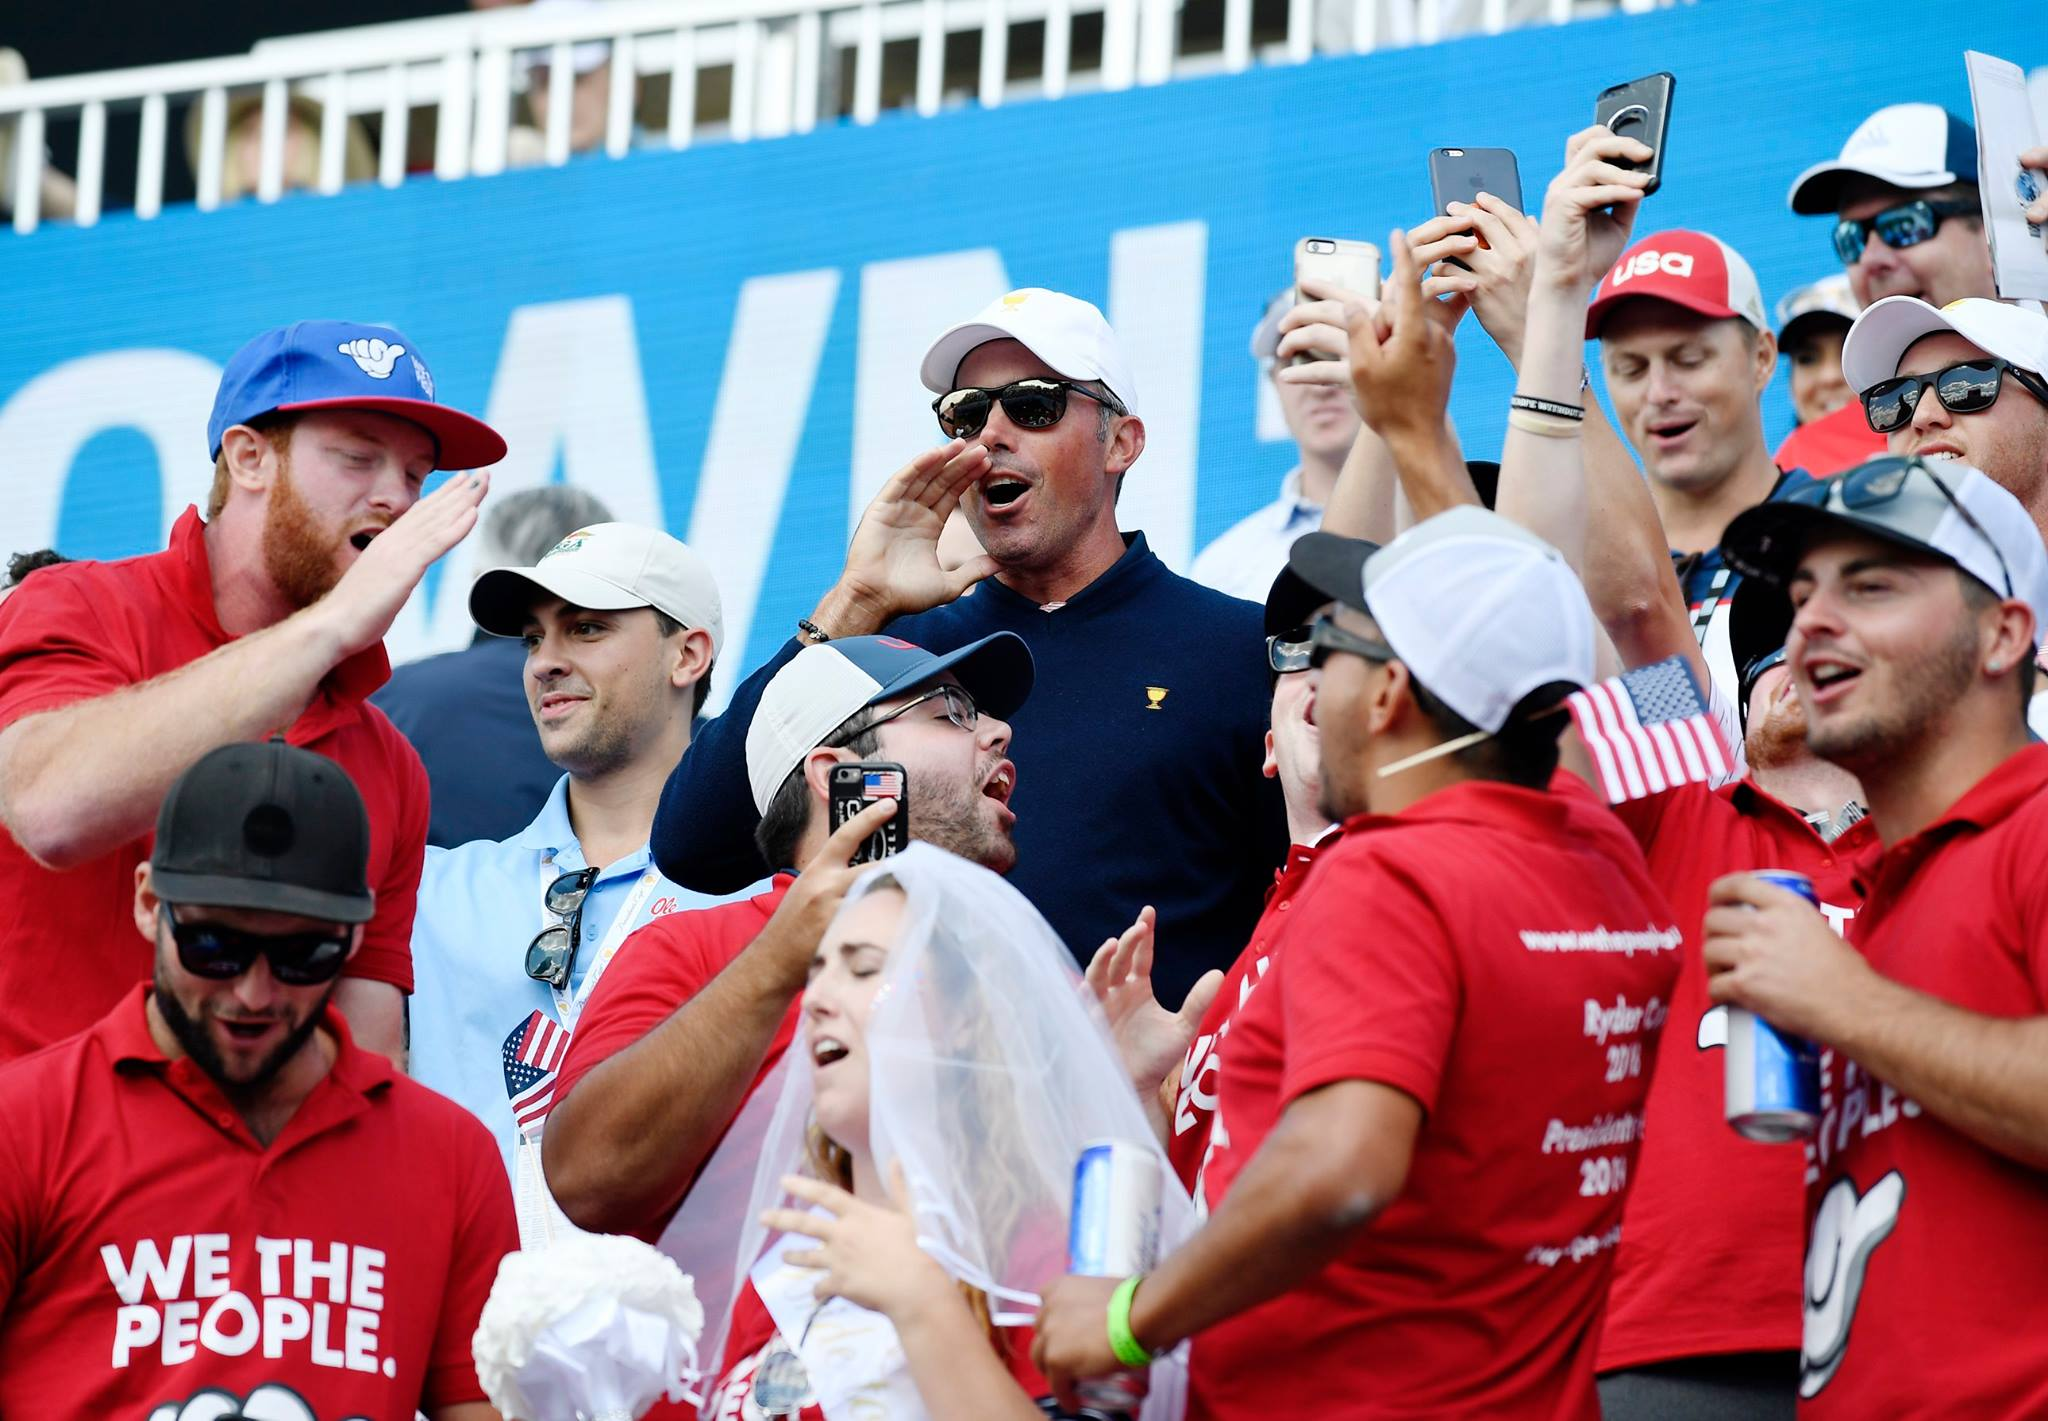 USA favourite and all round legend Matt Kuchar joins We The People fans in chanting for Team USA!